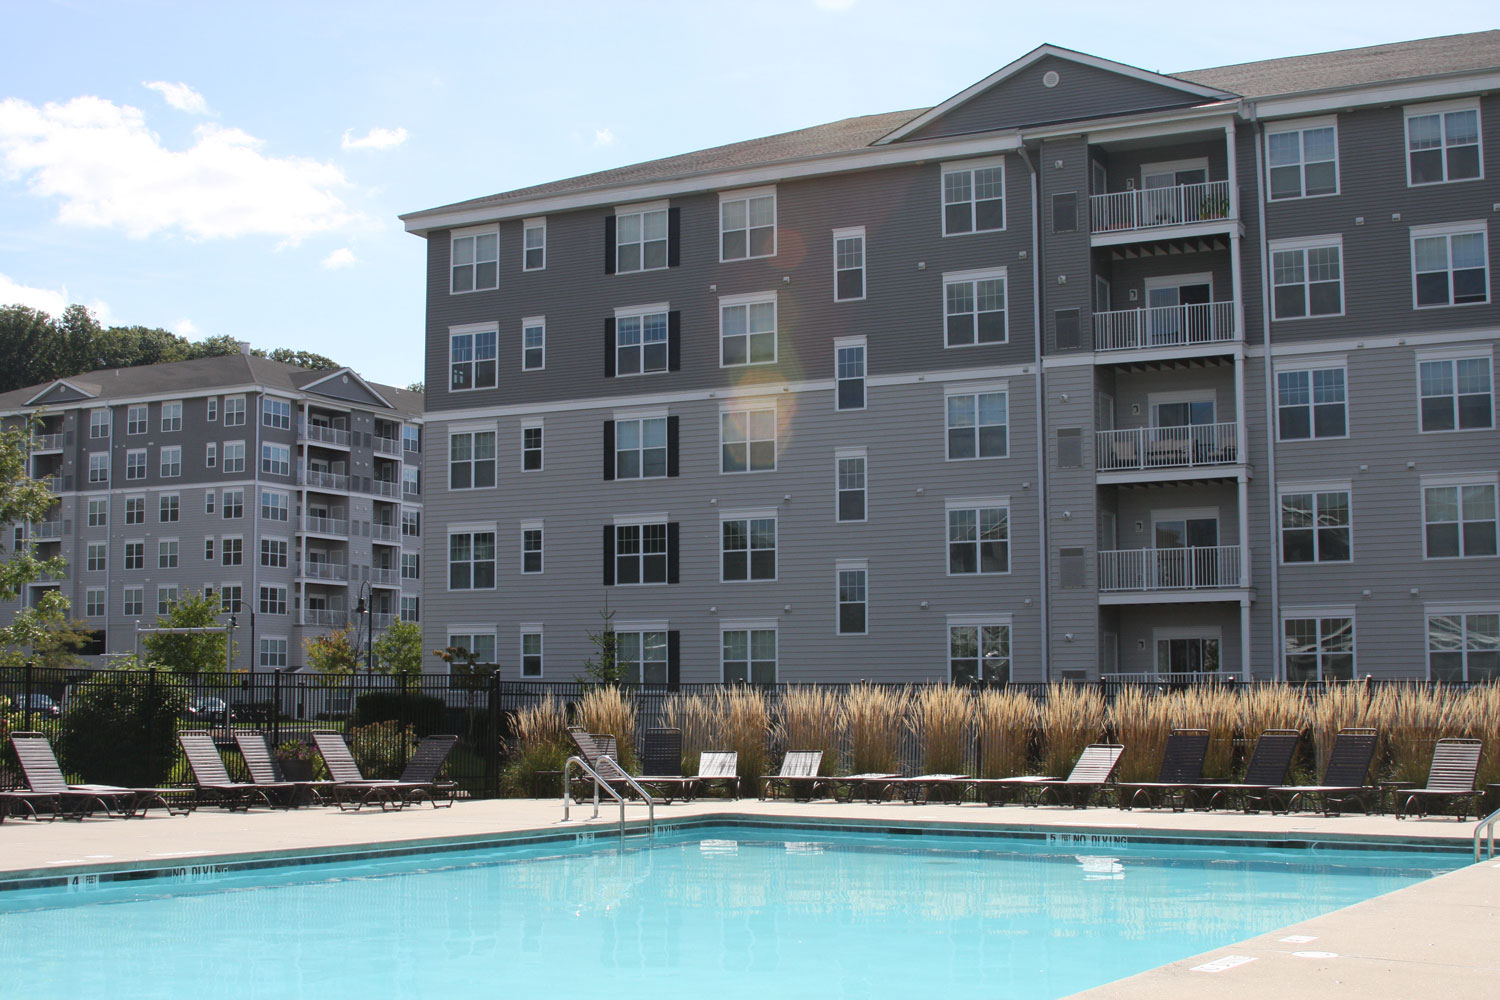 Swimming Pool at Abbey Lane Apartments in Danbury, Connecticut